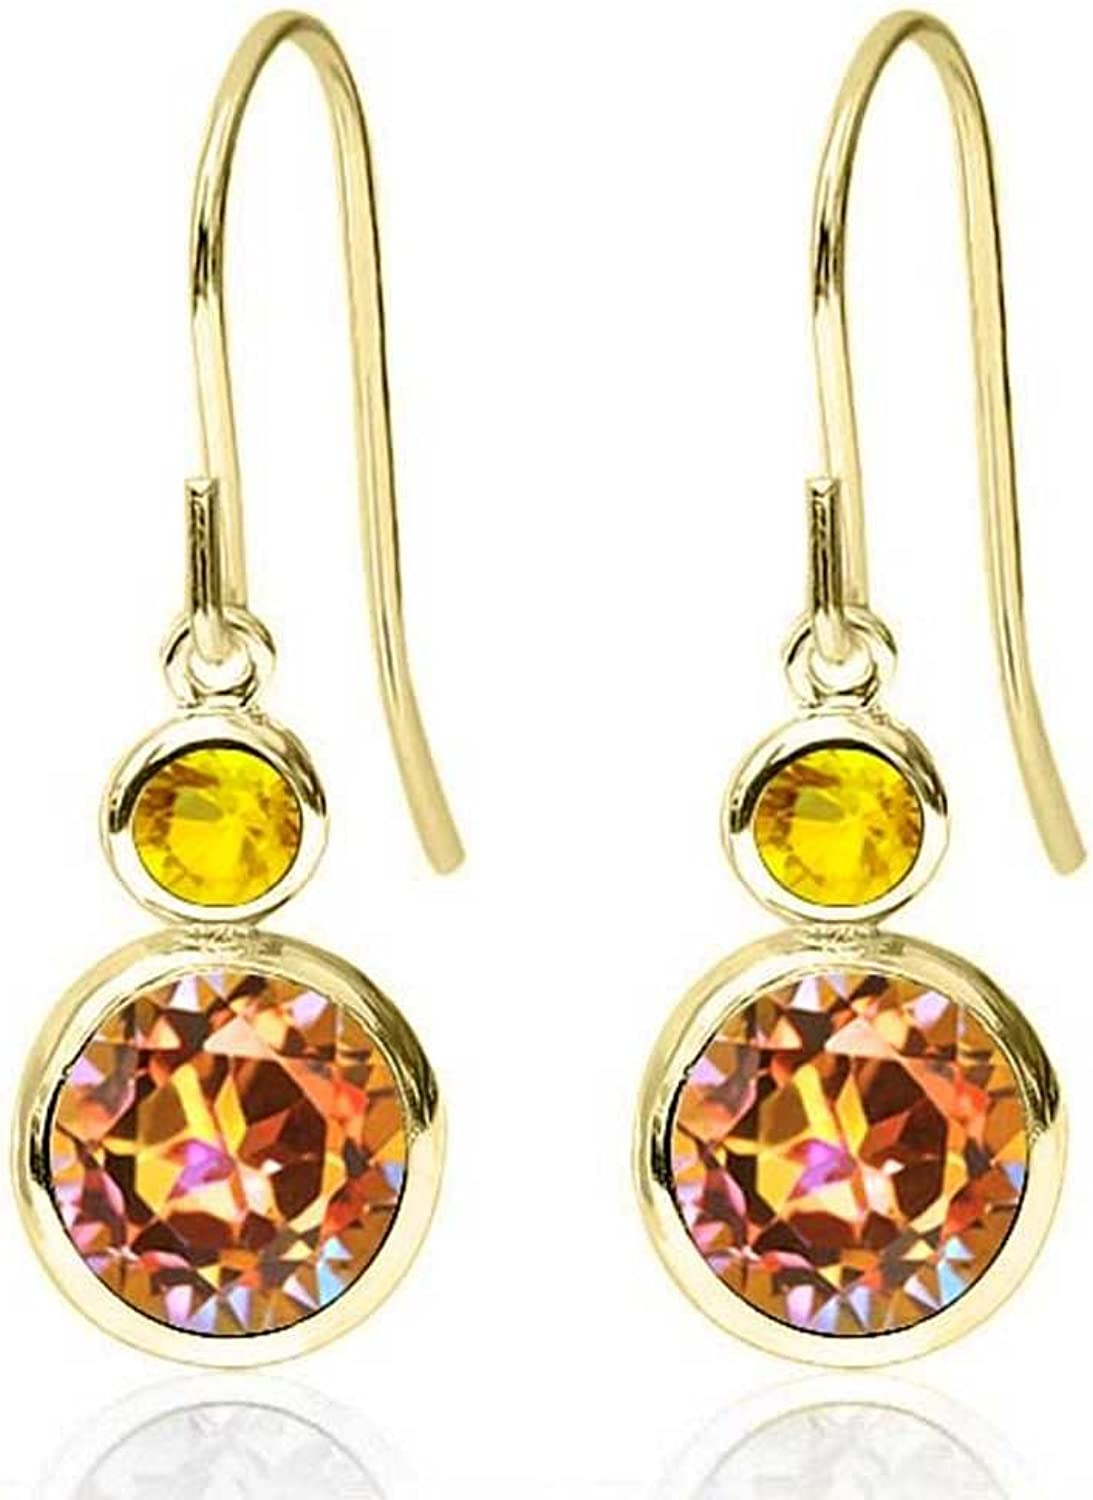 2.16 Ct Round Ecstasy Mystic Topaz Yellow Sapphire 14K Yellow gold Earrings